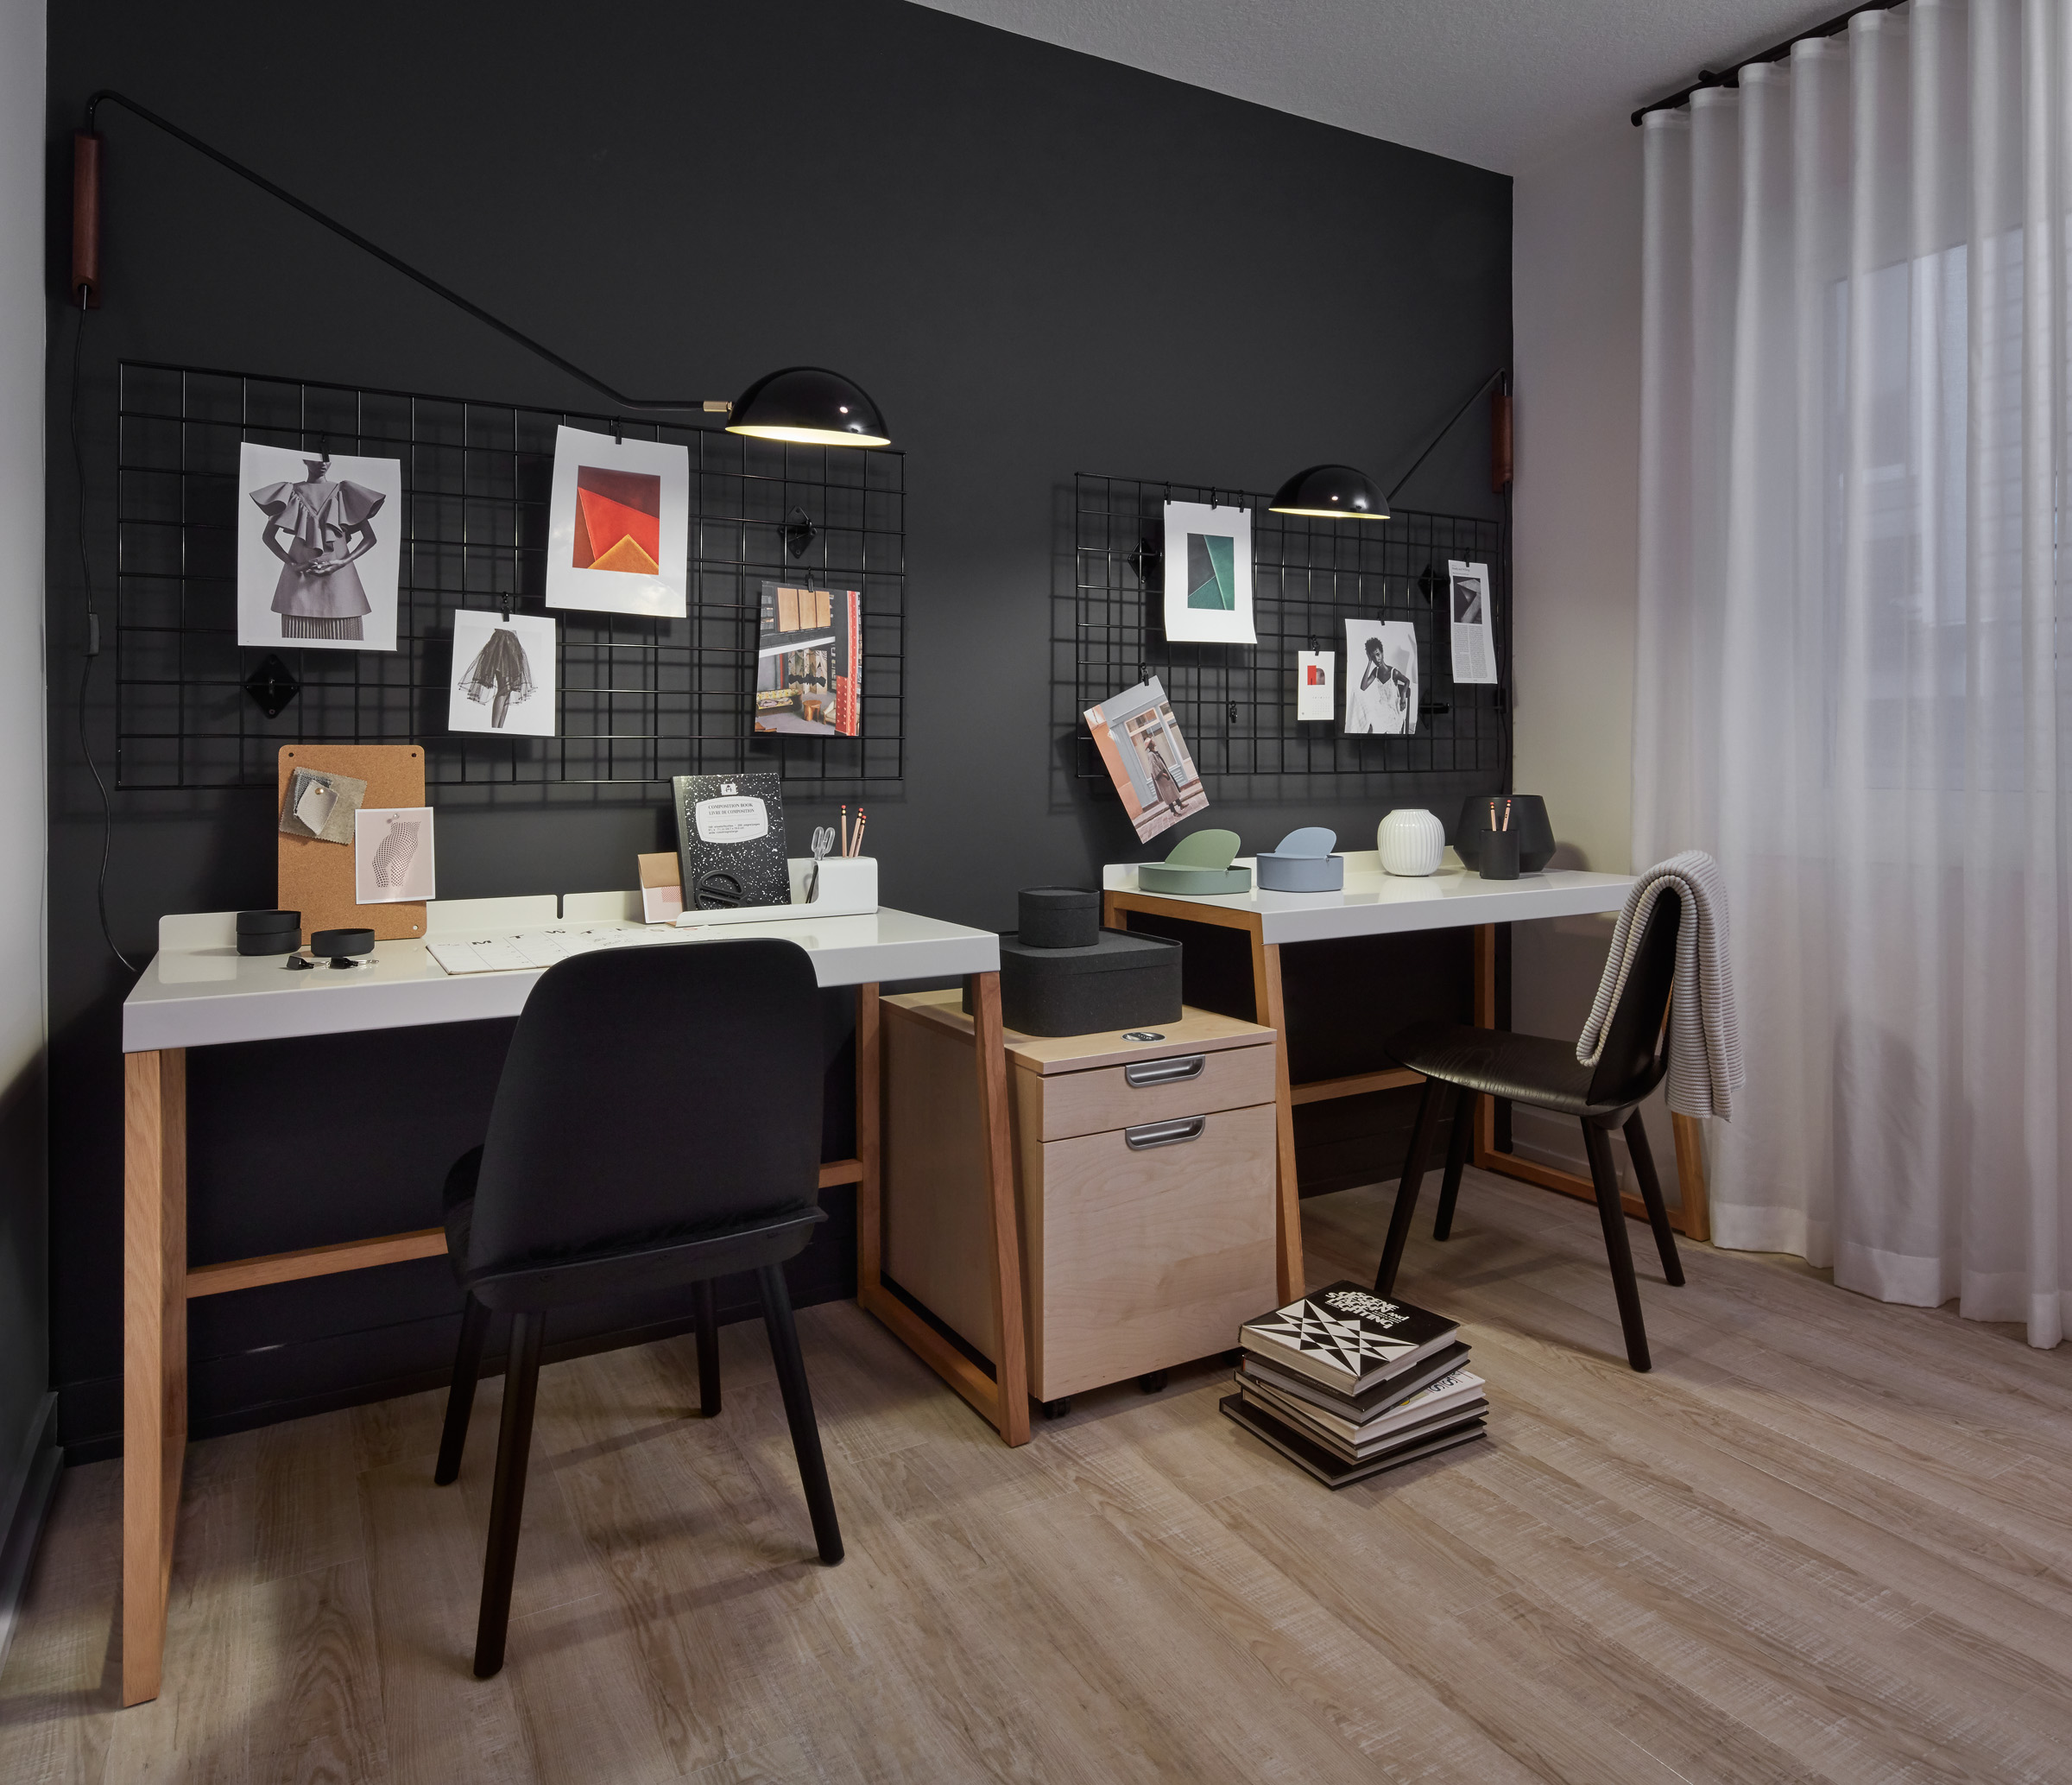 Modern Scandi workspace with two desks, black walls, and art boards on walls